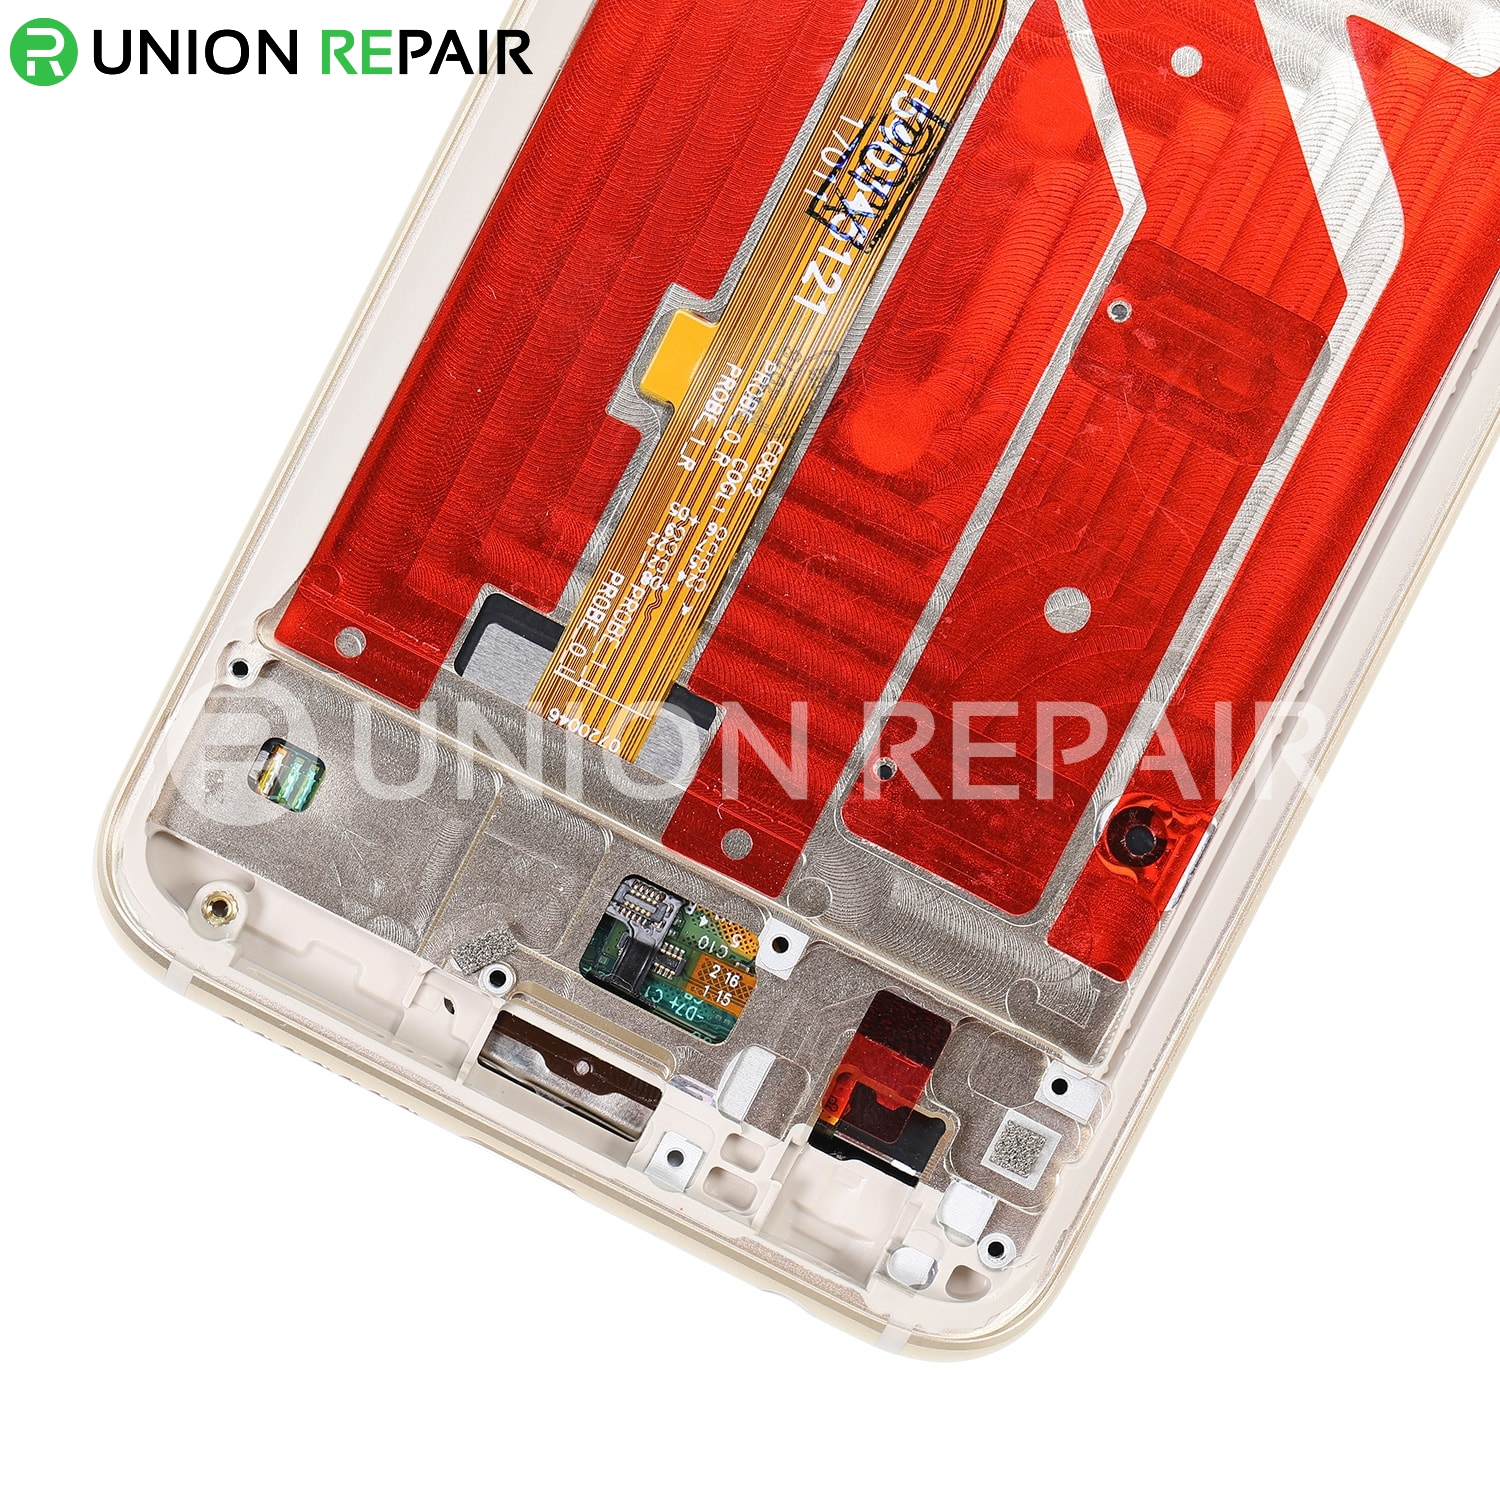 Replacement for Huawei Honor 9 LCD Screen Digitizer with Frame - GoldReplacement for Huawei Honor 9 LCD Screen Digitizer with Frame - Gold